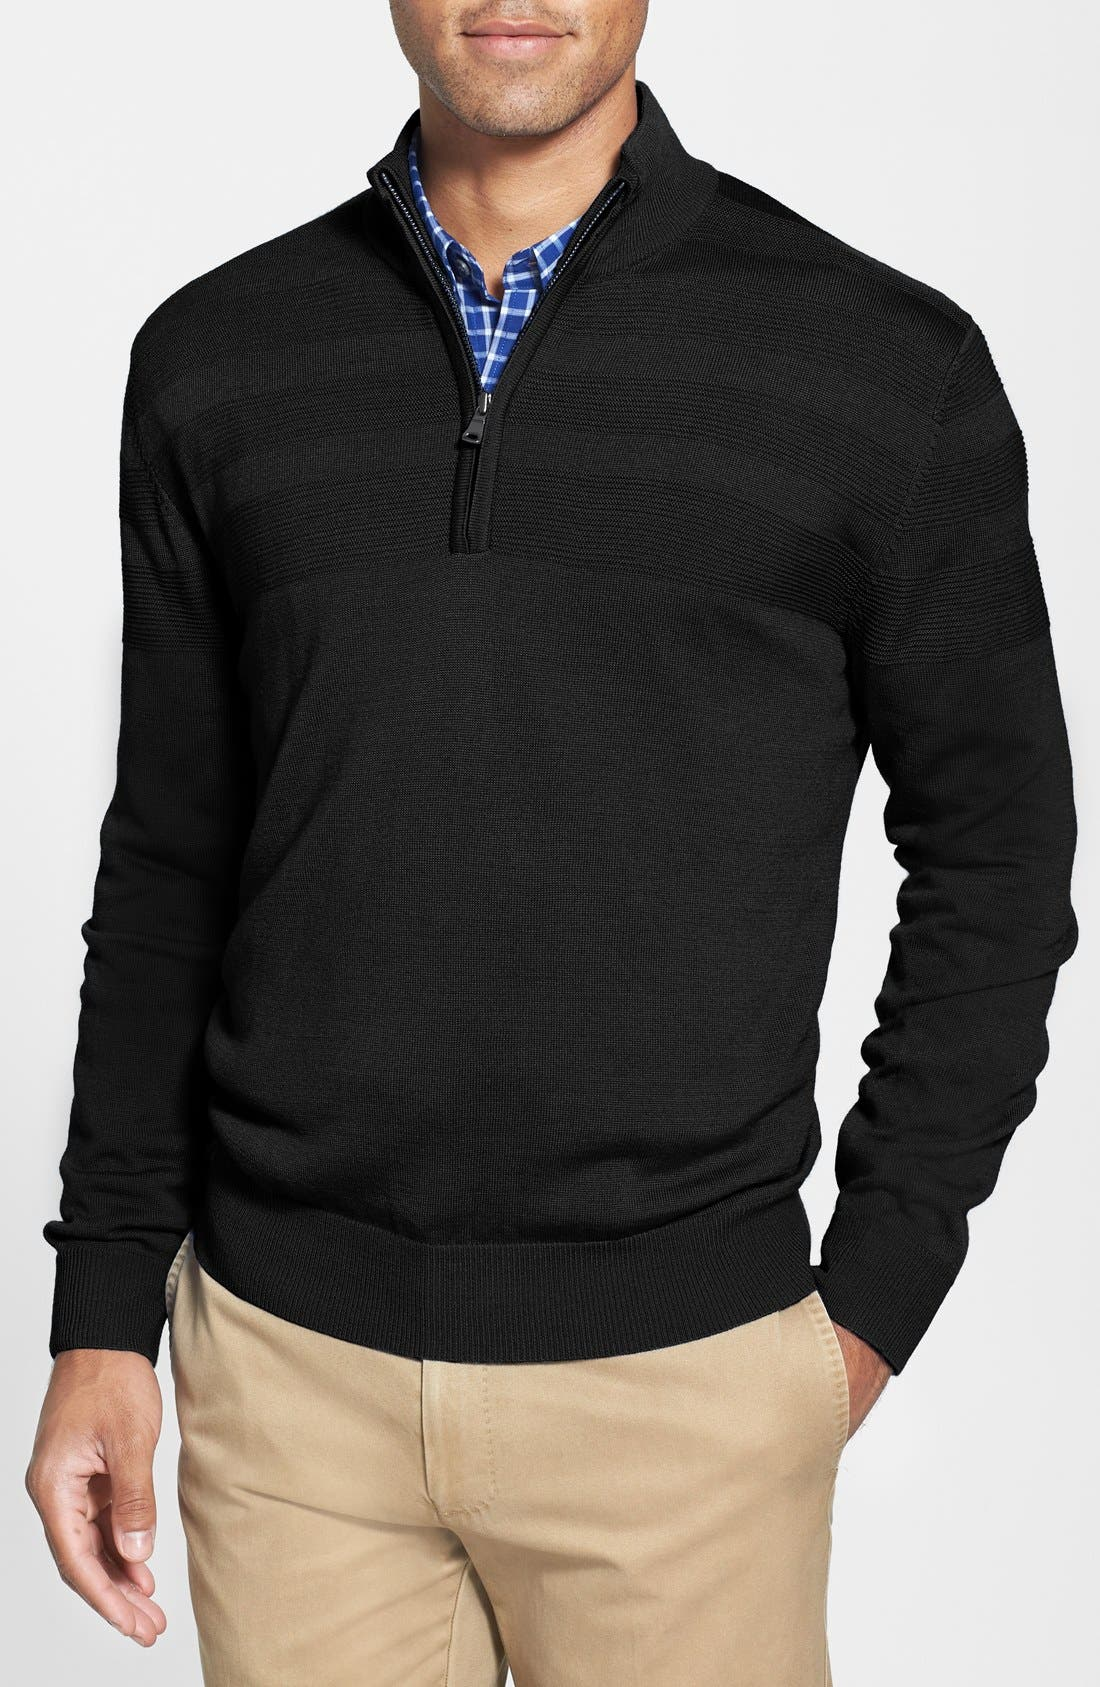 'Douglas' Merino Wool Blend Half Zip Sweater,                             Main thumbnail 1, color,                             001